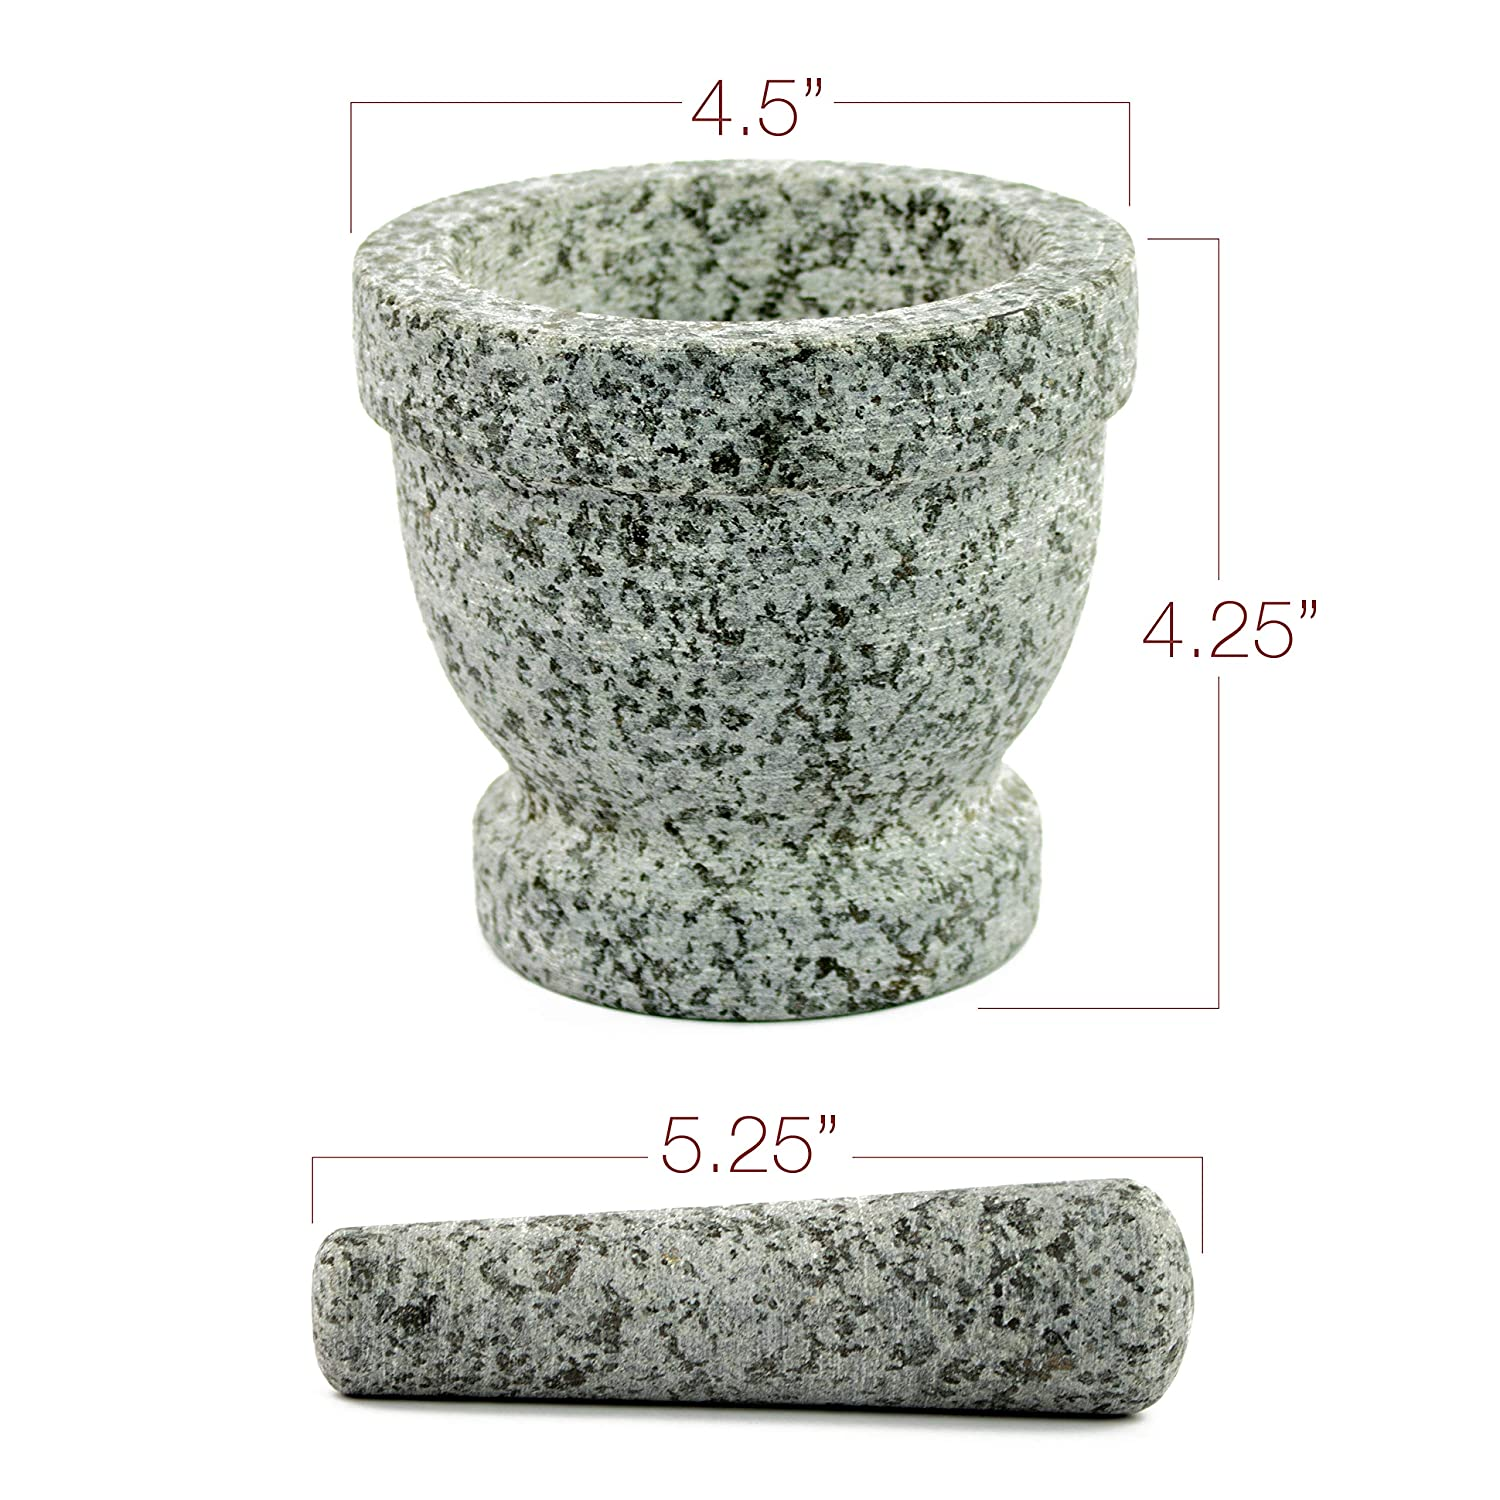 Unpolished Granite with Bonus Garlic Peeler Protective Pad for Stability and Protected Counters Mortar and Pestle Set